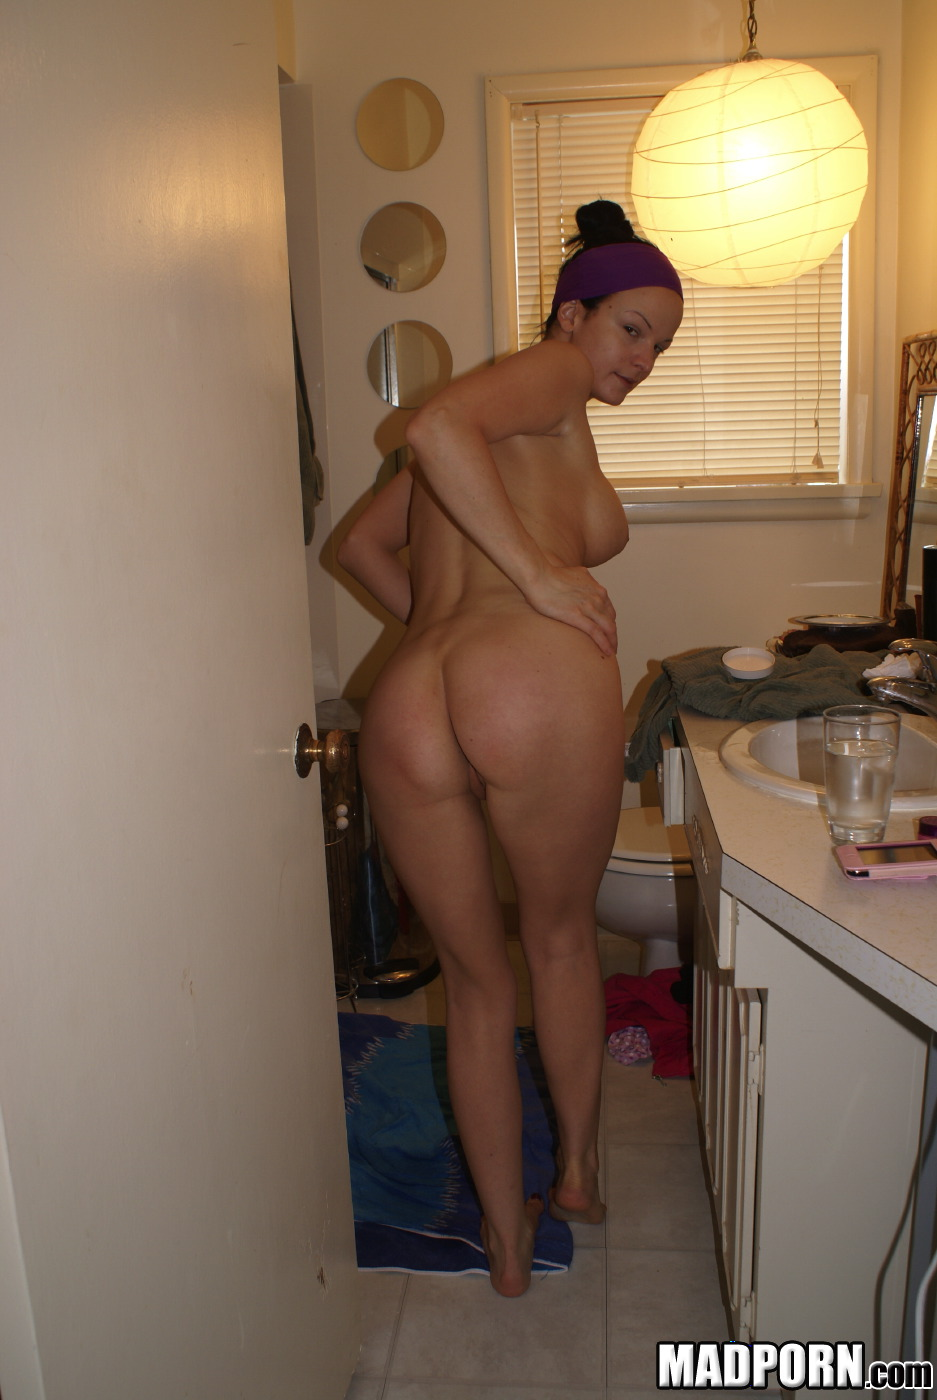 She'd images of hottest sex in the bathroom tiny. hot